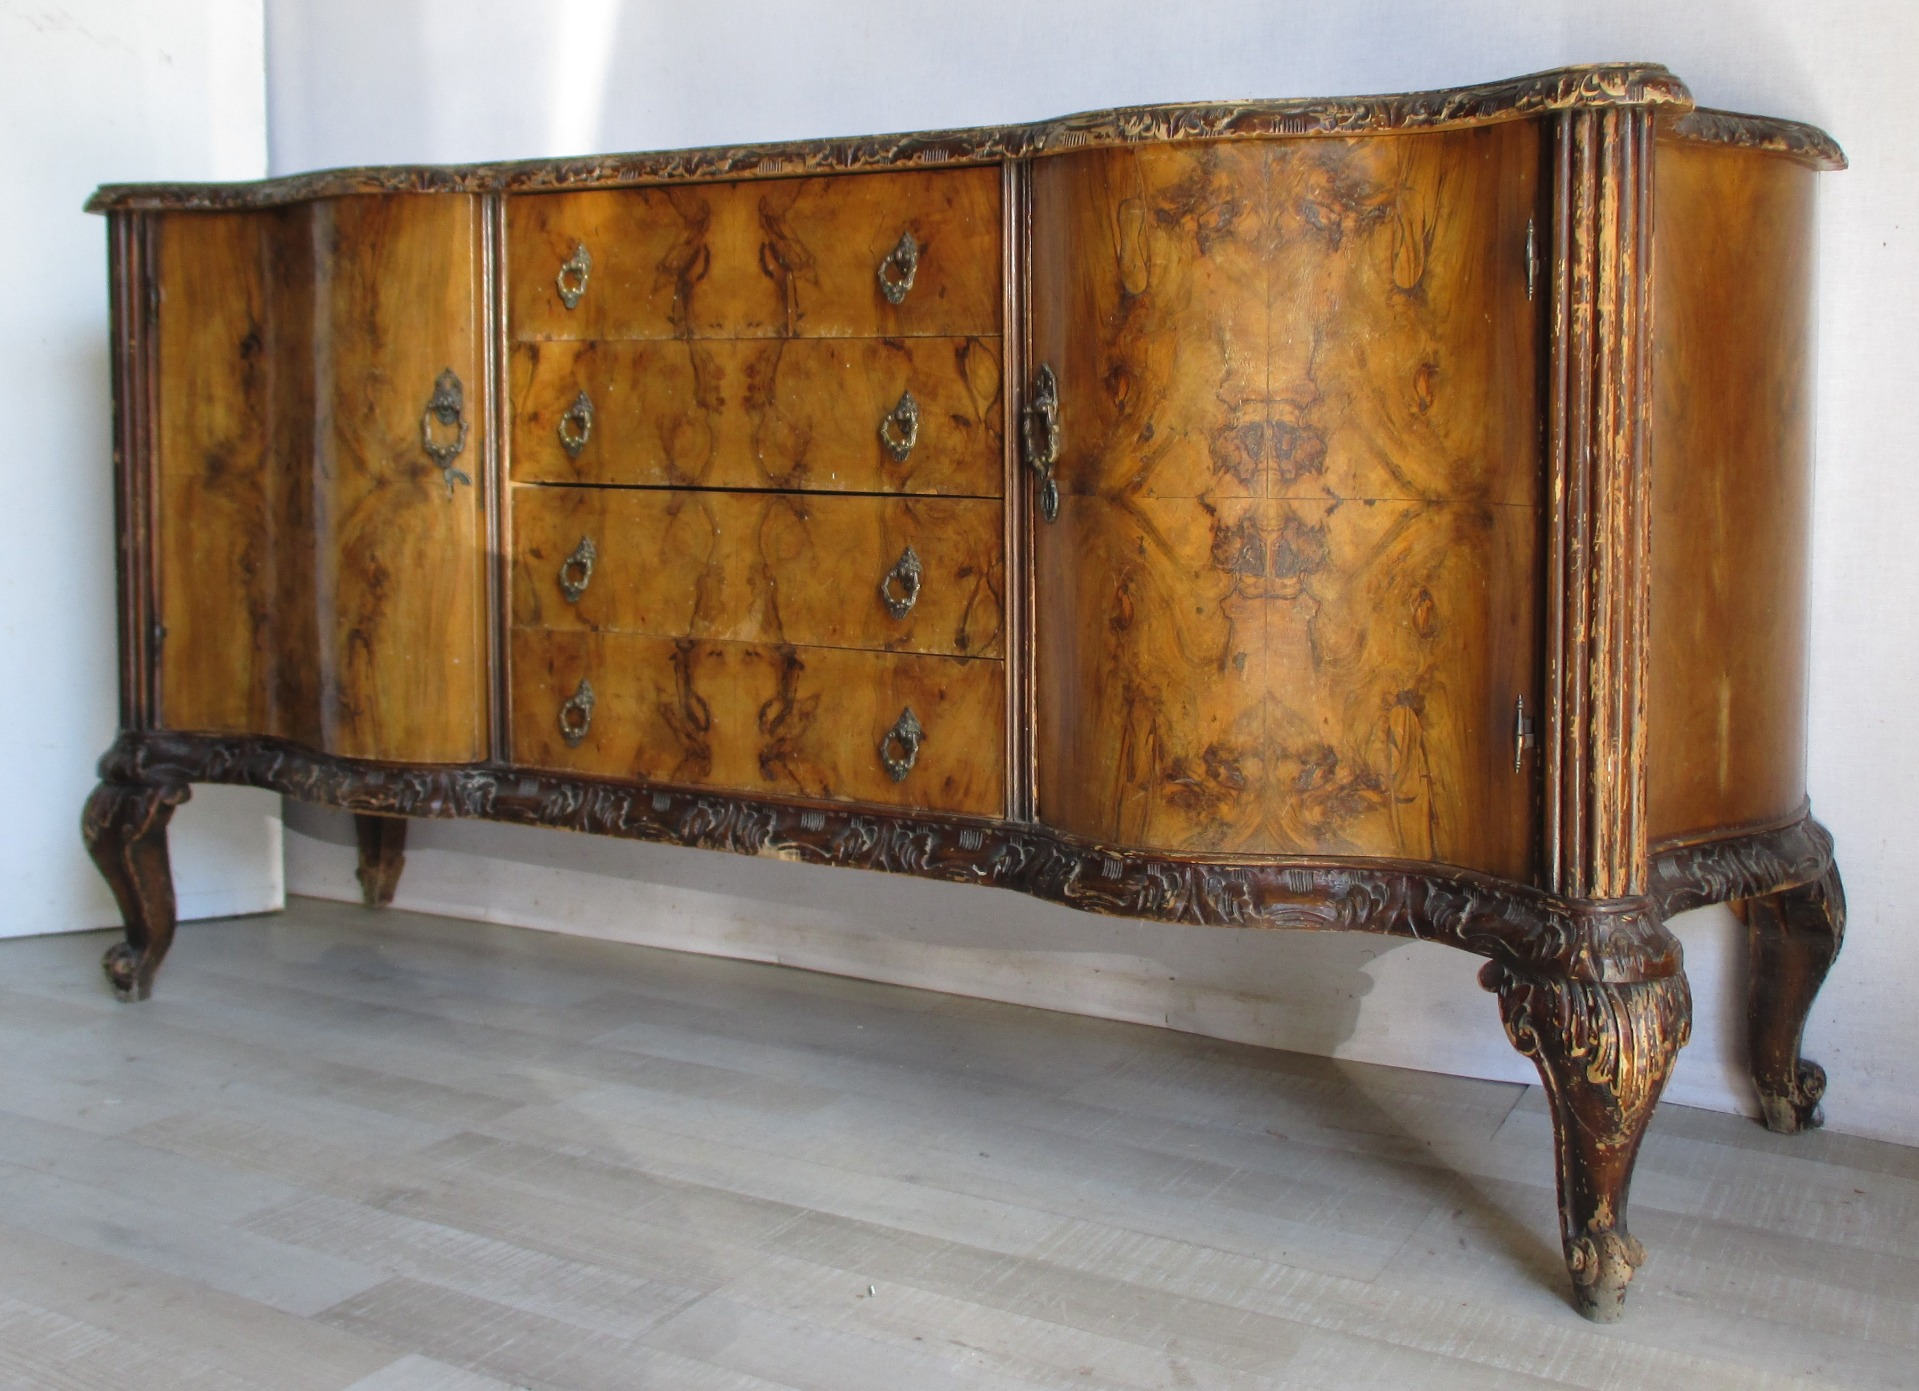 Ricoloriamo i tuoi vecchi mobili in stile. Chippendale Sideboard Buffet Walnut And Briar 1930s Shabby Chic Ideal Very Beautiful Great Quality Mercanteinfiera Marketplace